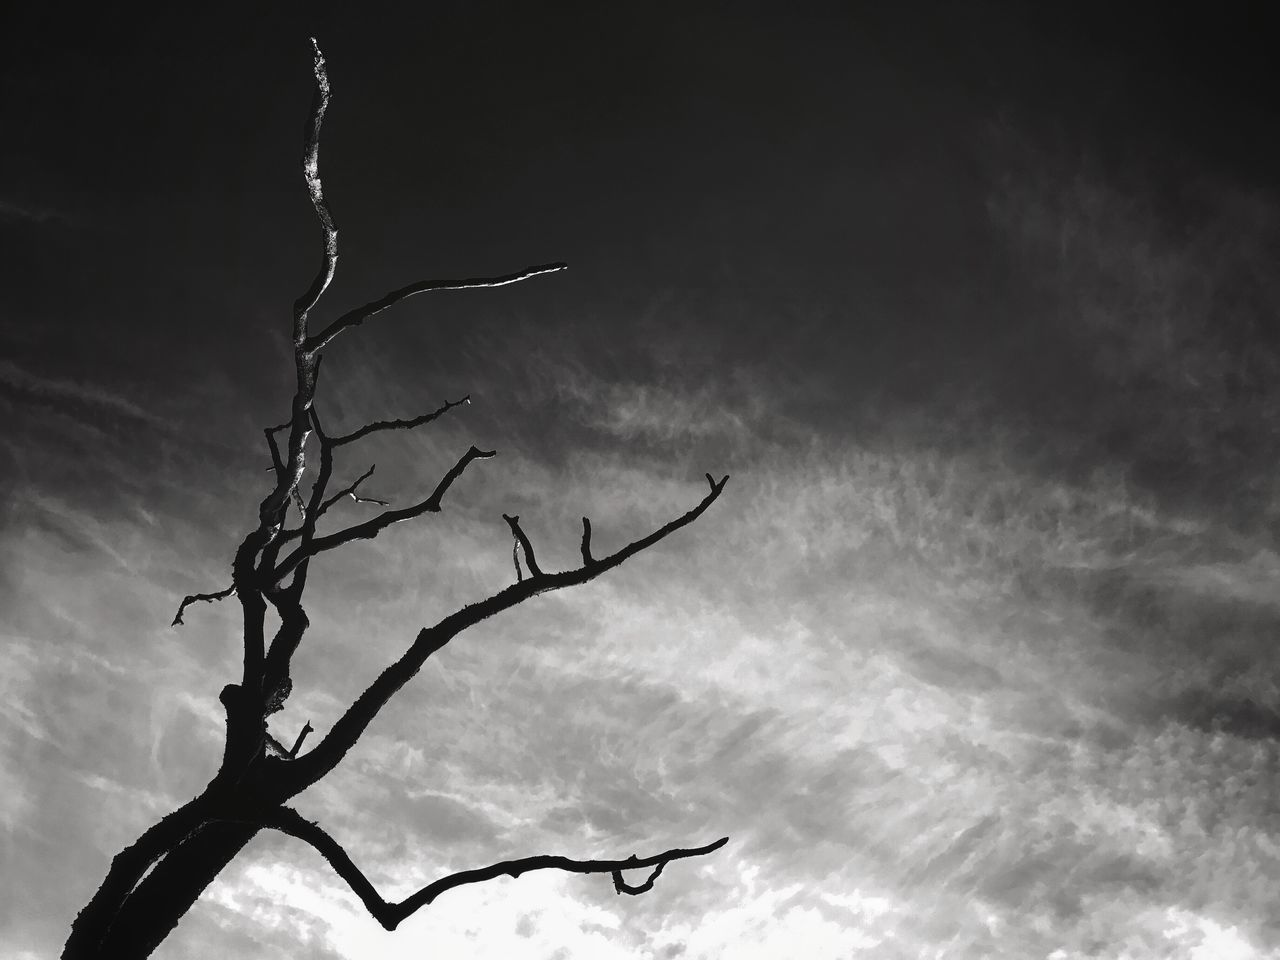 Bare Tree Black Black And White Blackandwhite Branch Cloud - Sky Dark Day Low Angle View Nature No People Outdoors Silhouette Sky Storm Cloud Tree